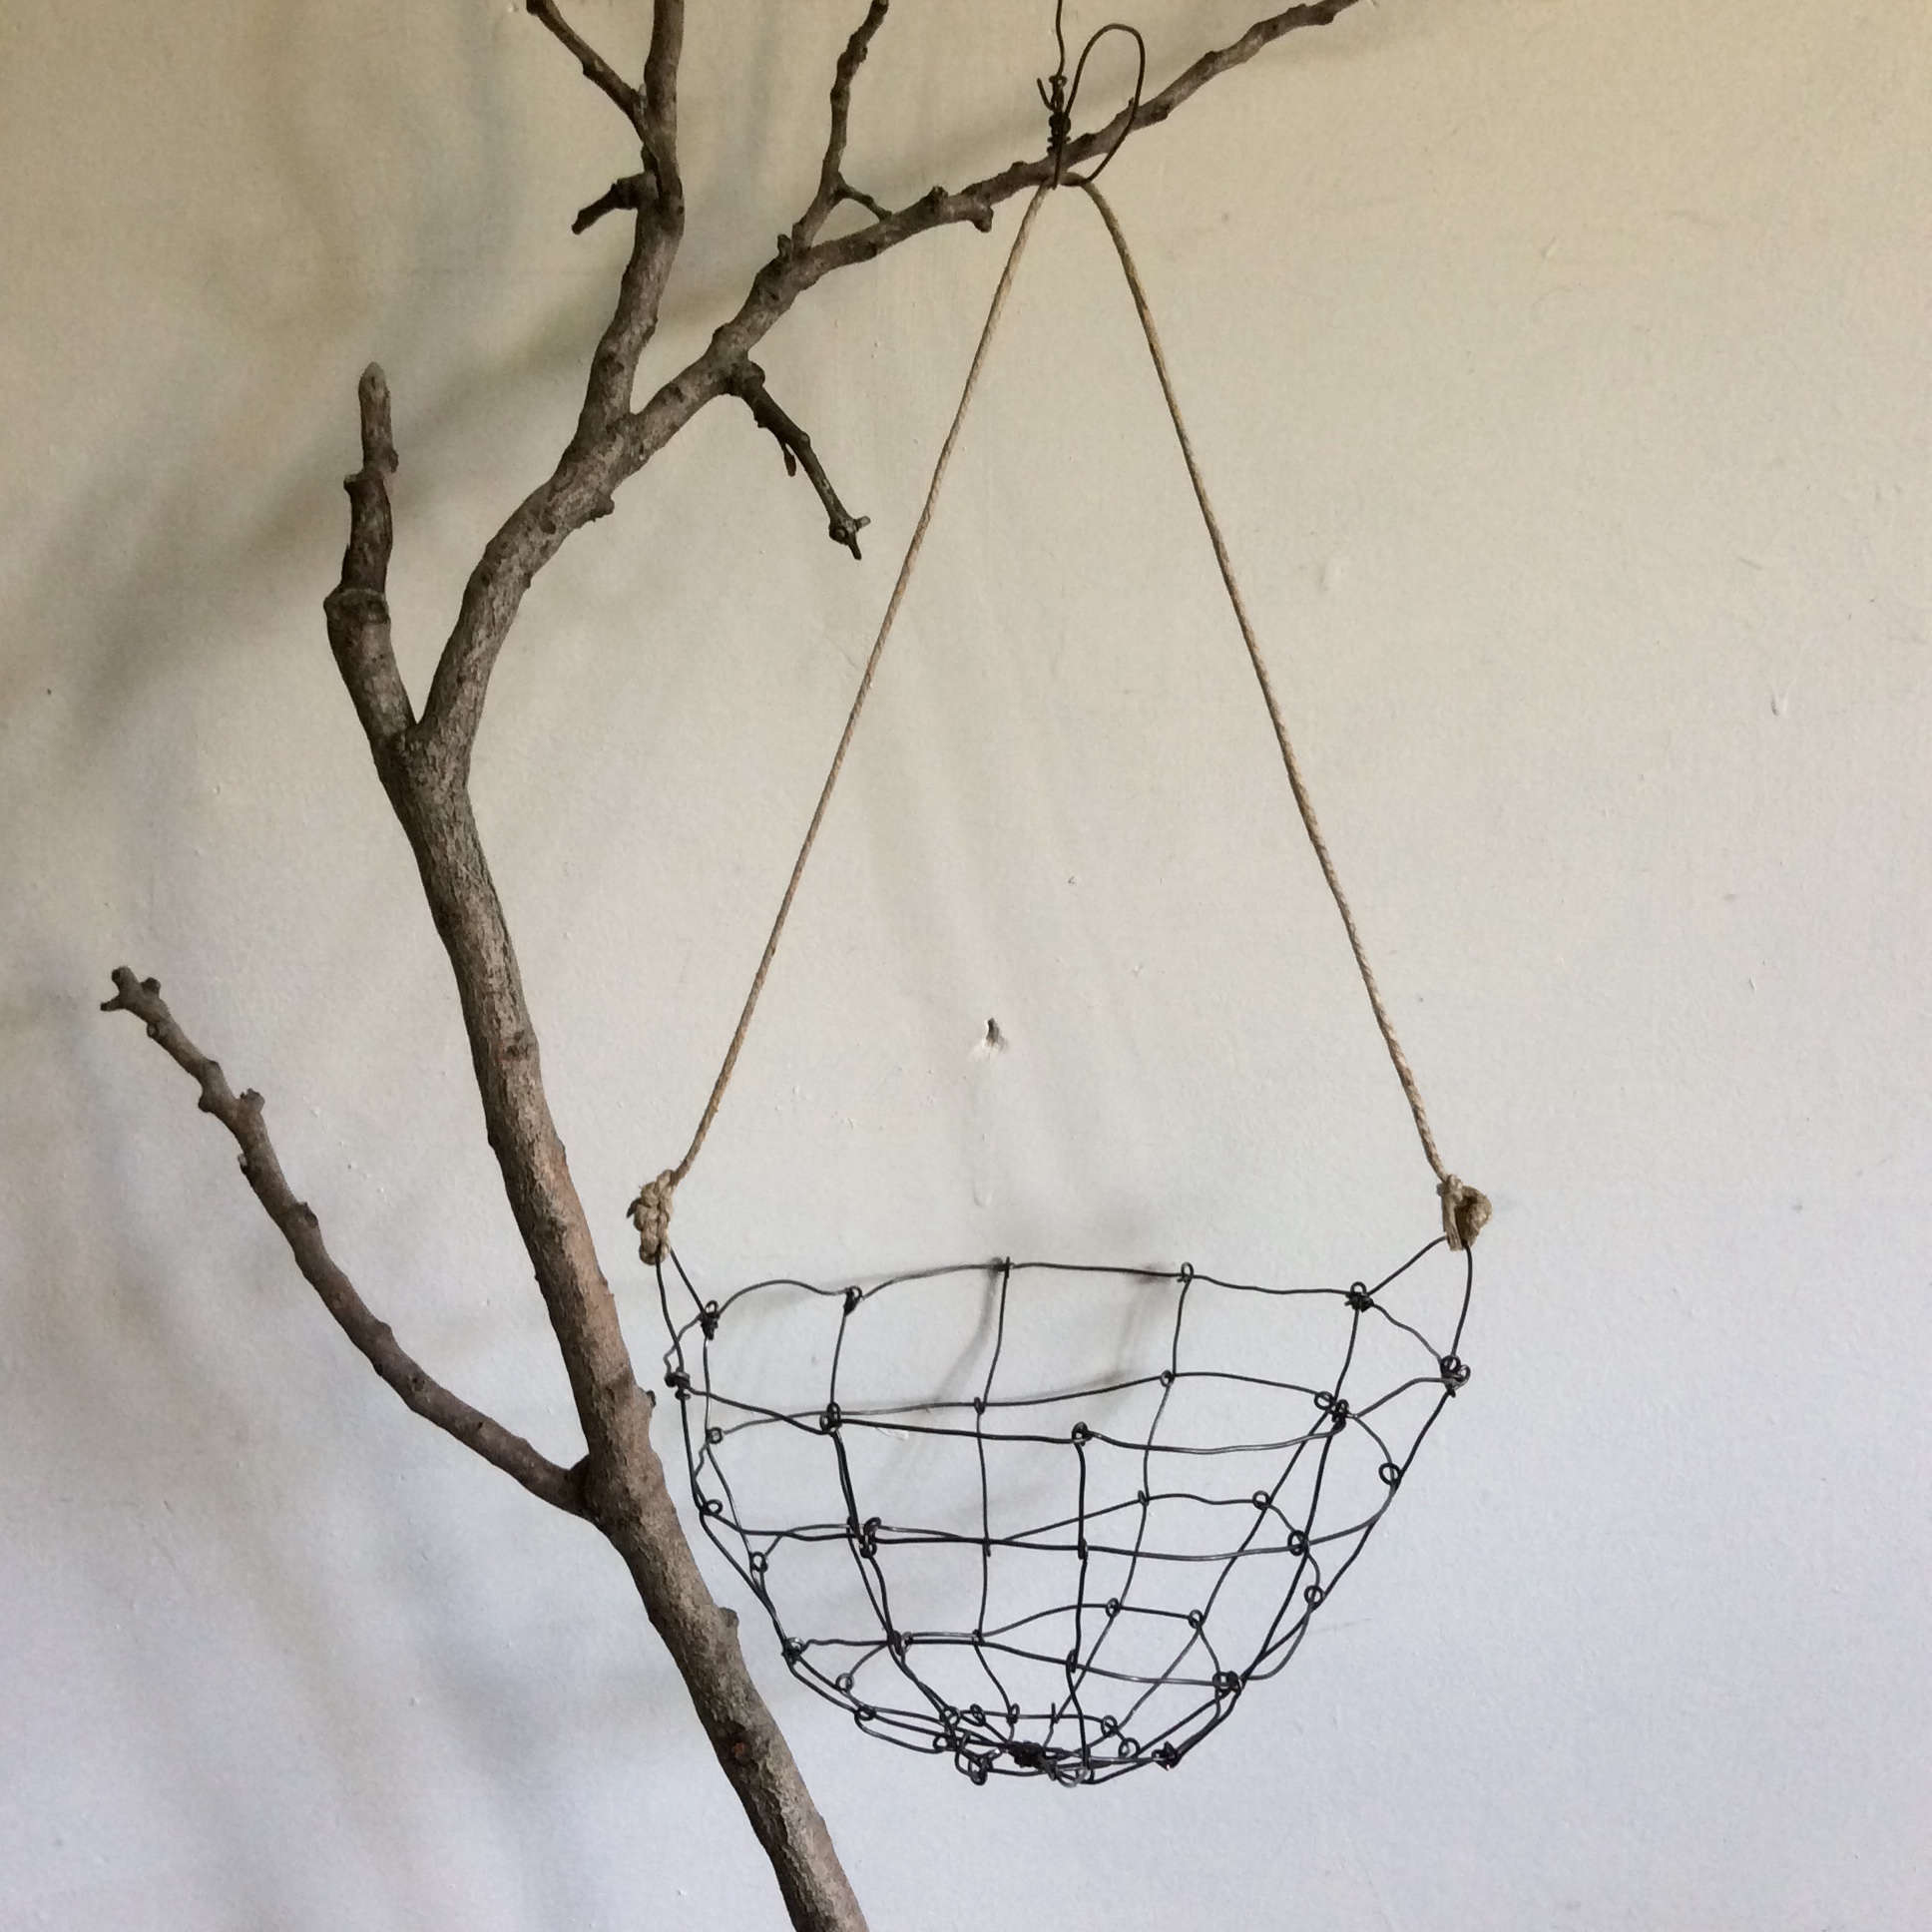 hanging wire basket by instagram stars from melbourne, artists mr and mrs charl 10